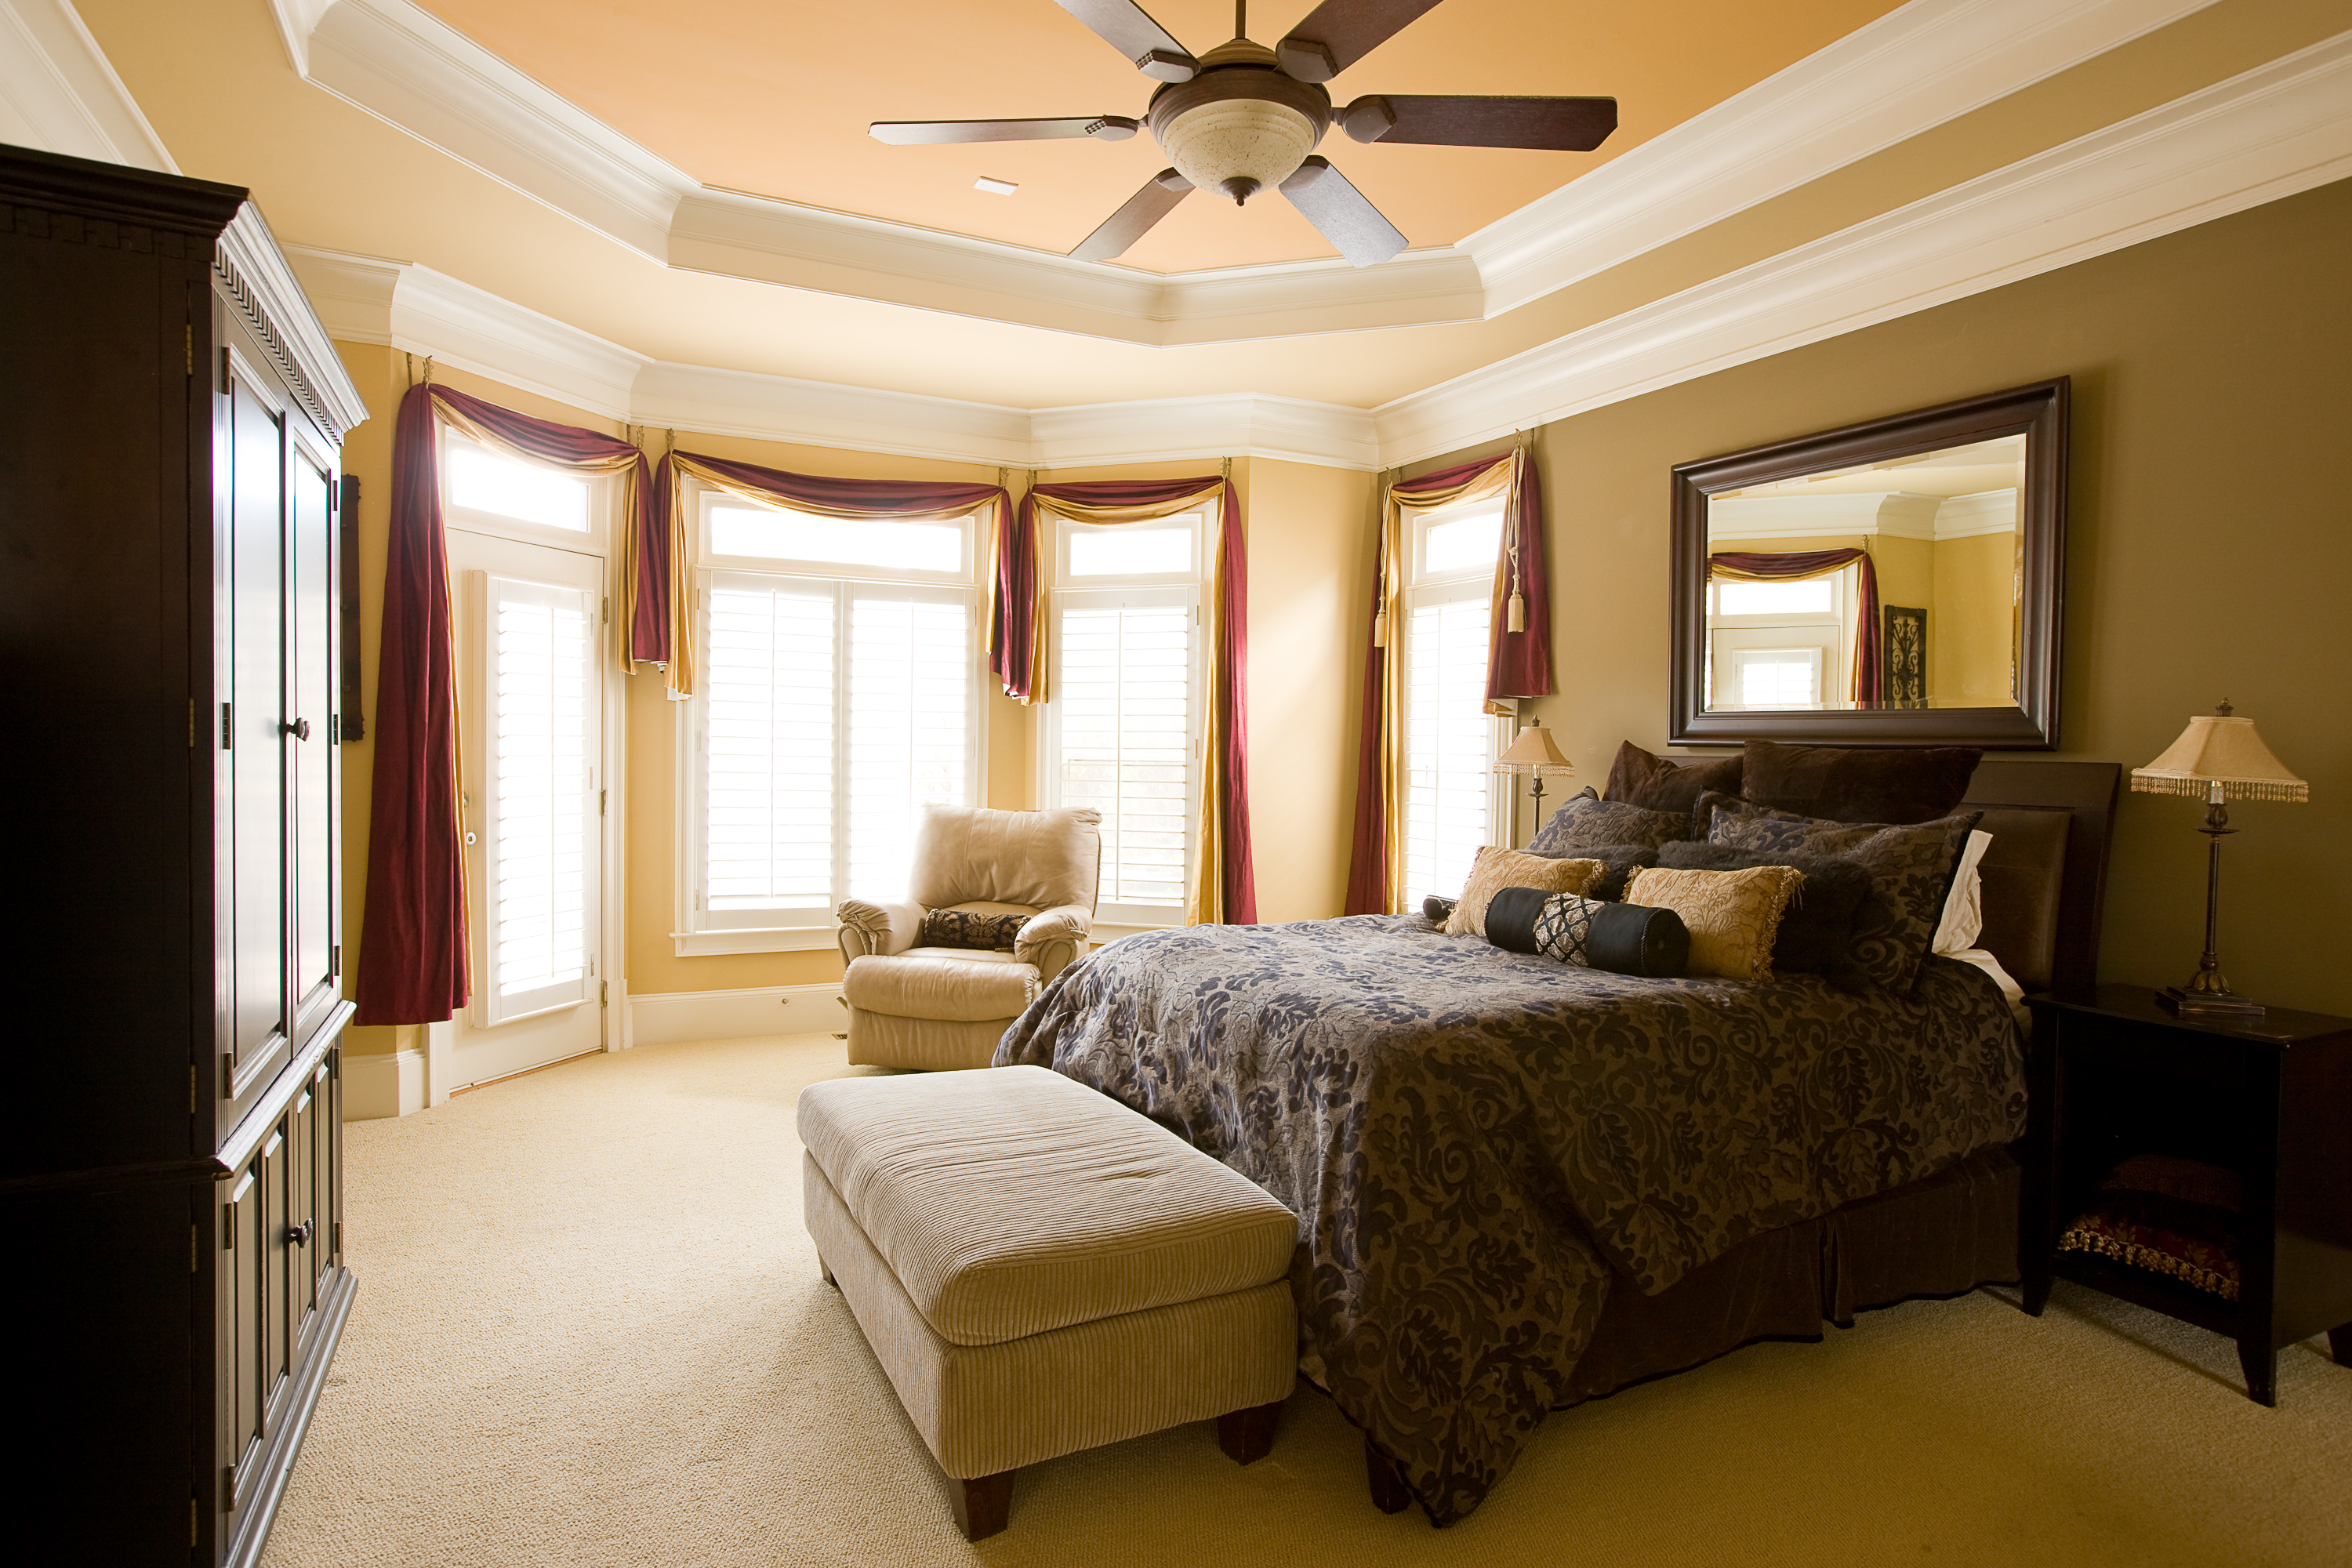 Home staging makes a huge difference in a competitive real estate market previously listed Master bedroom home staging